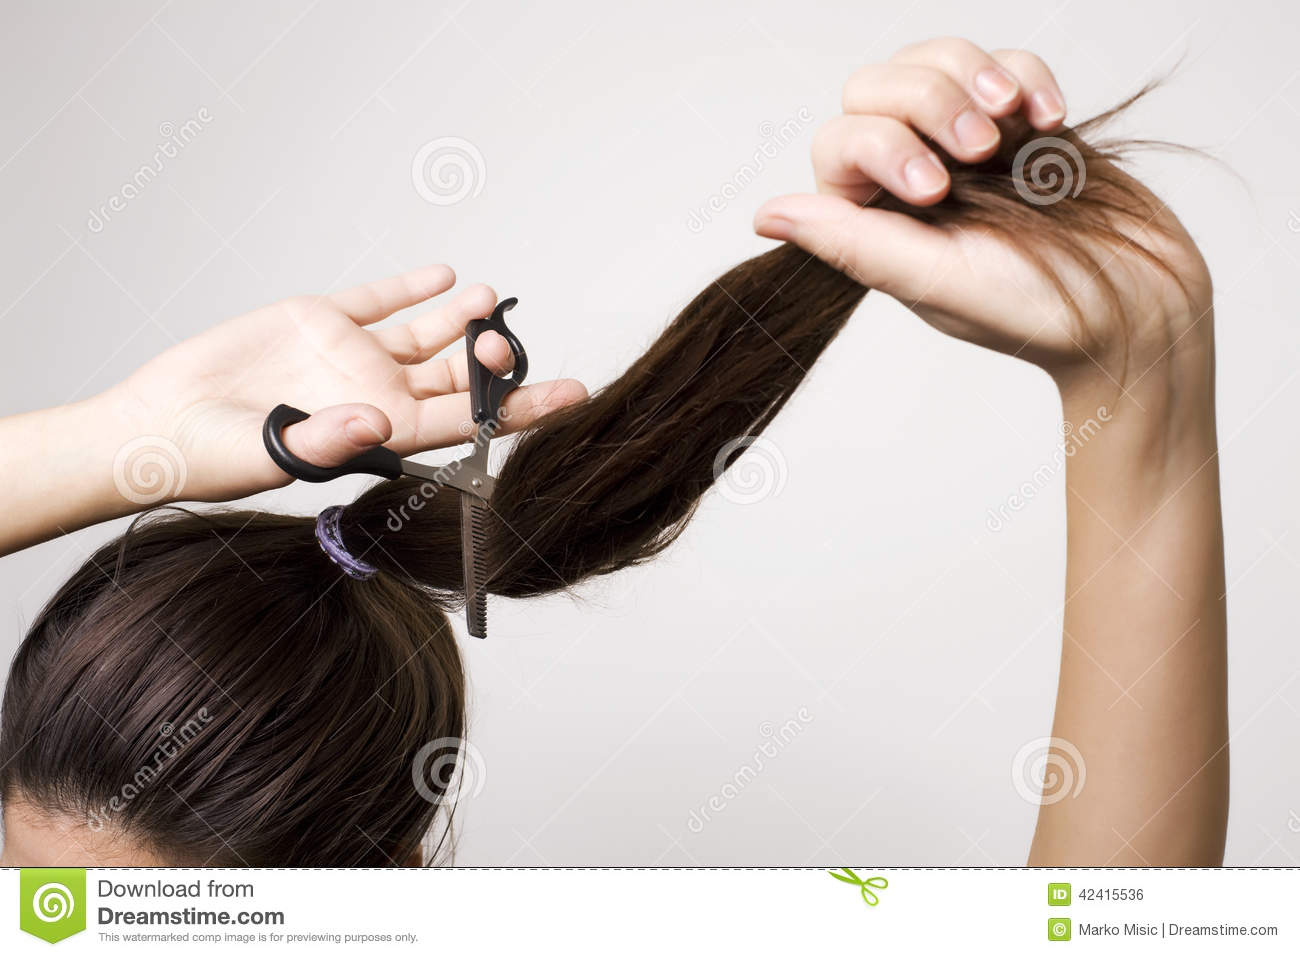 Woman Cutting Her Ponytail Stock Photo Image Of Problems